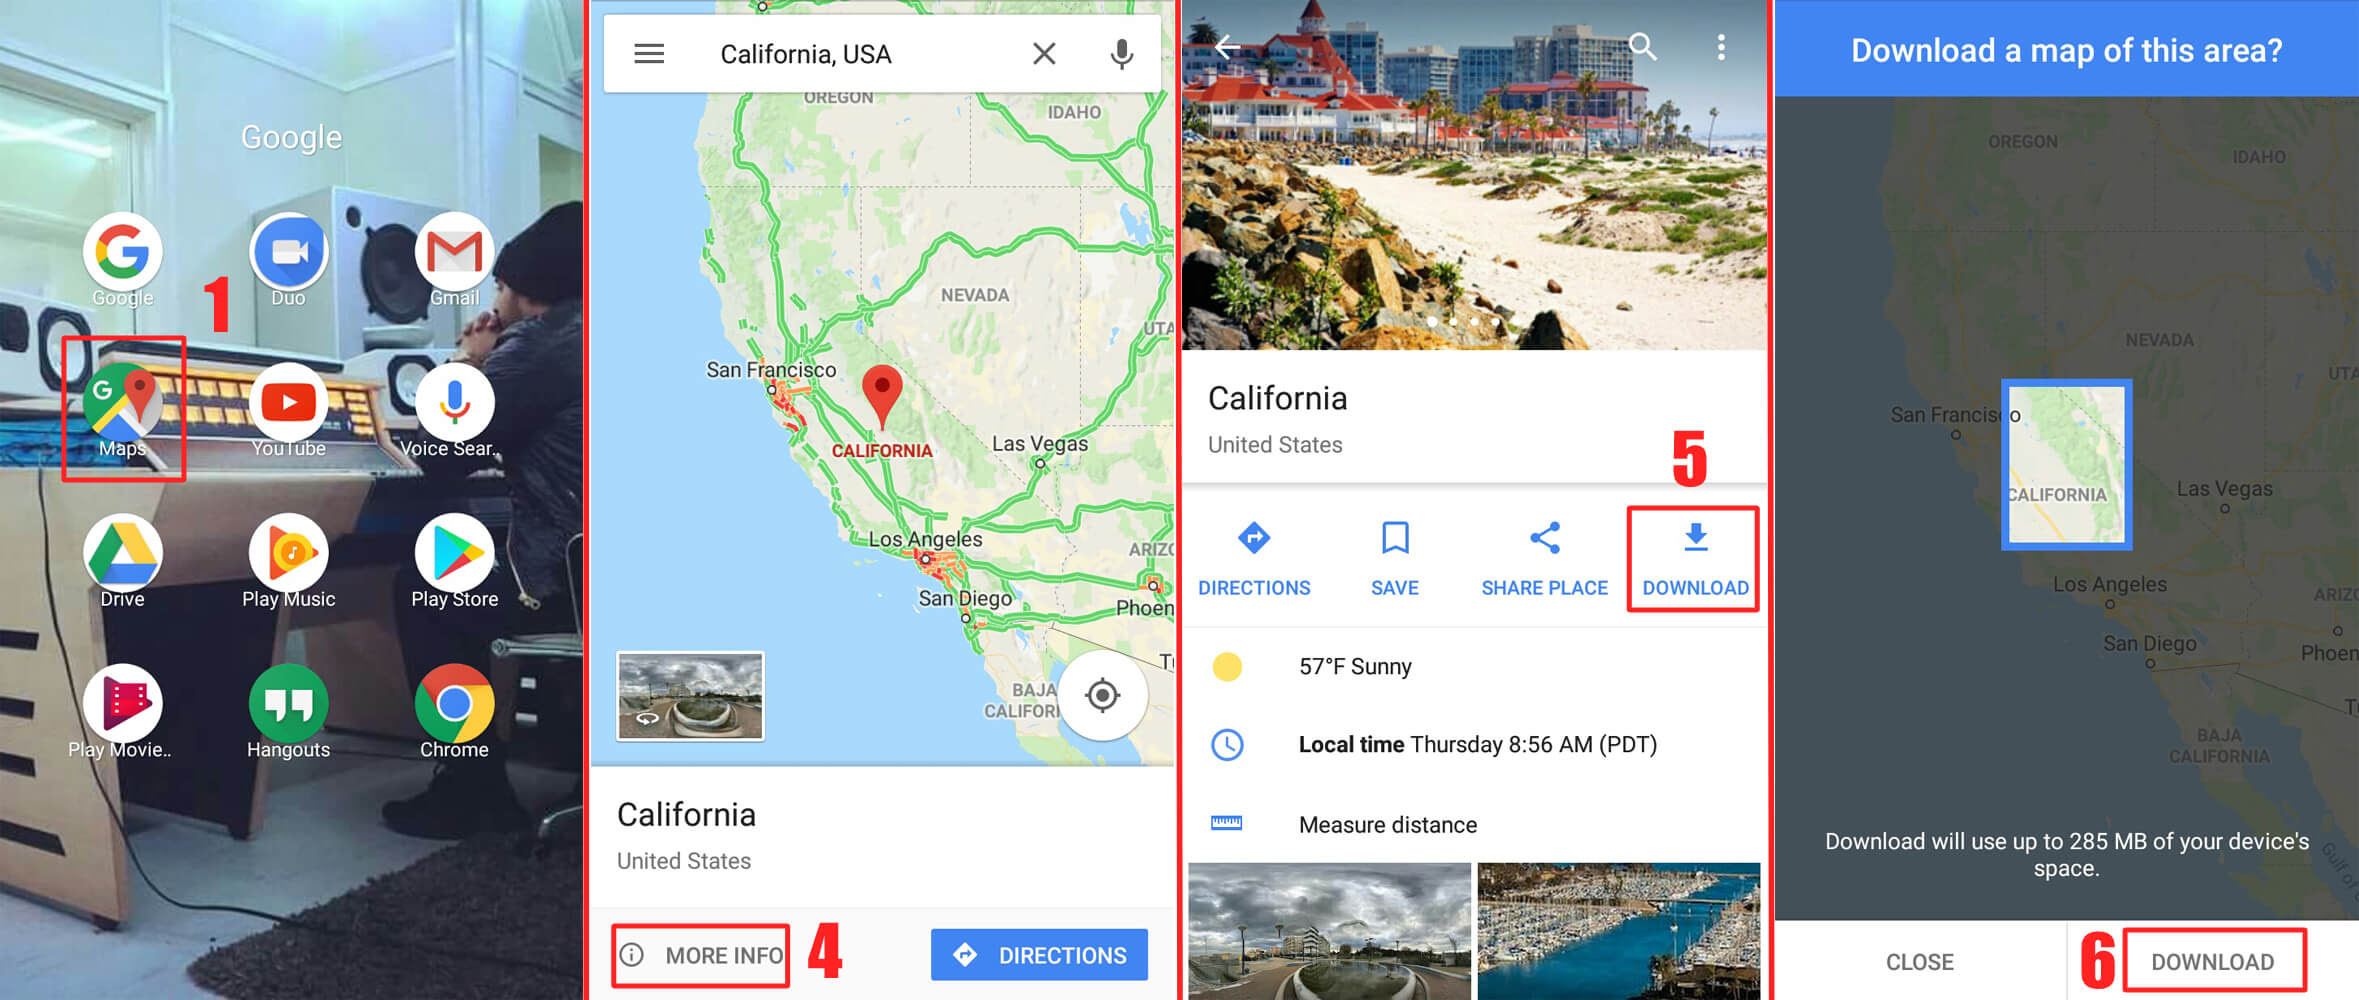 How To Use Google Maps Offline On Android Iphone Without